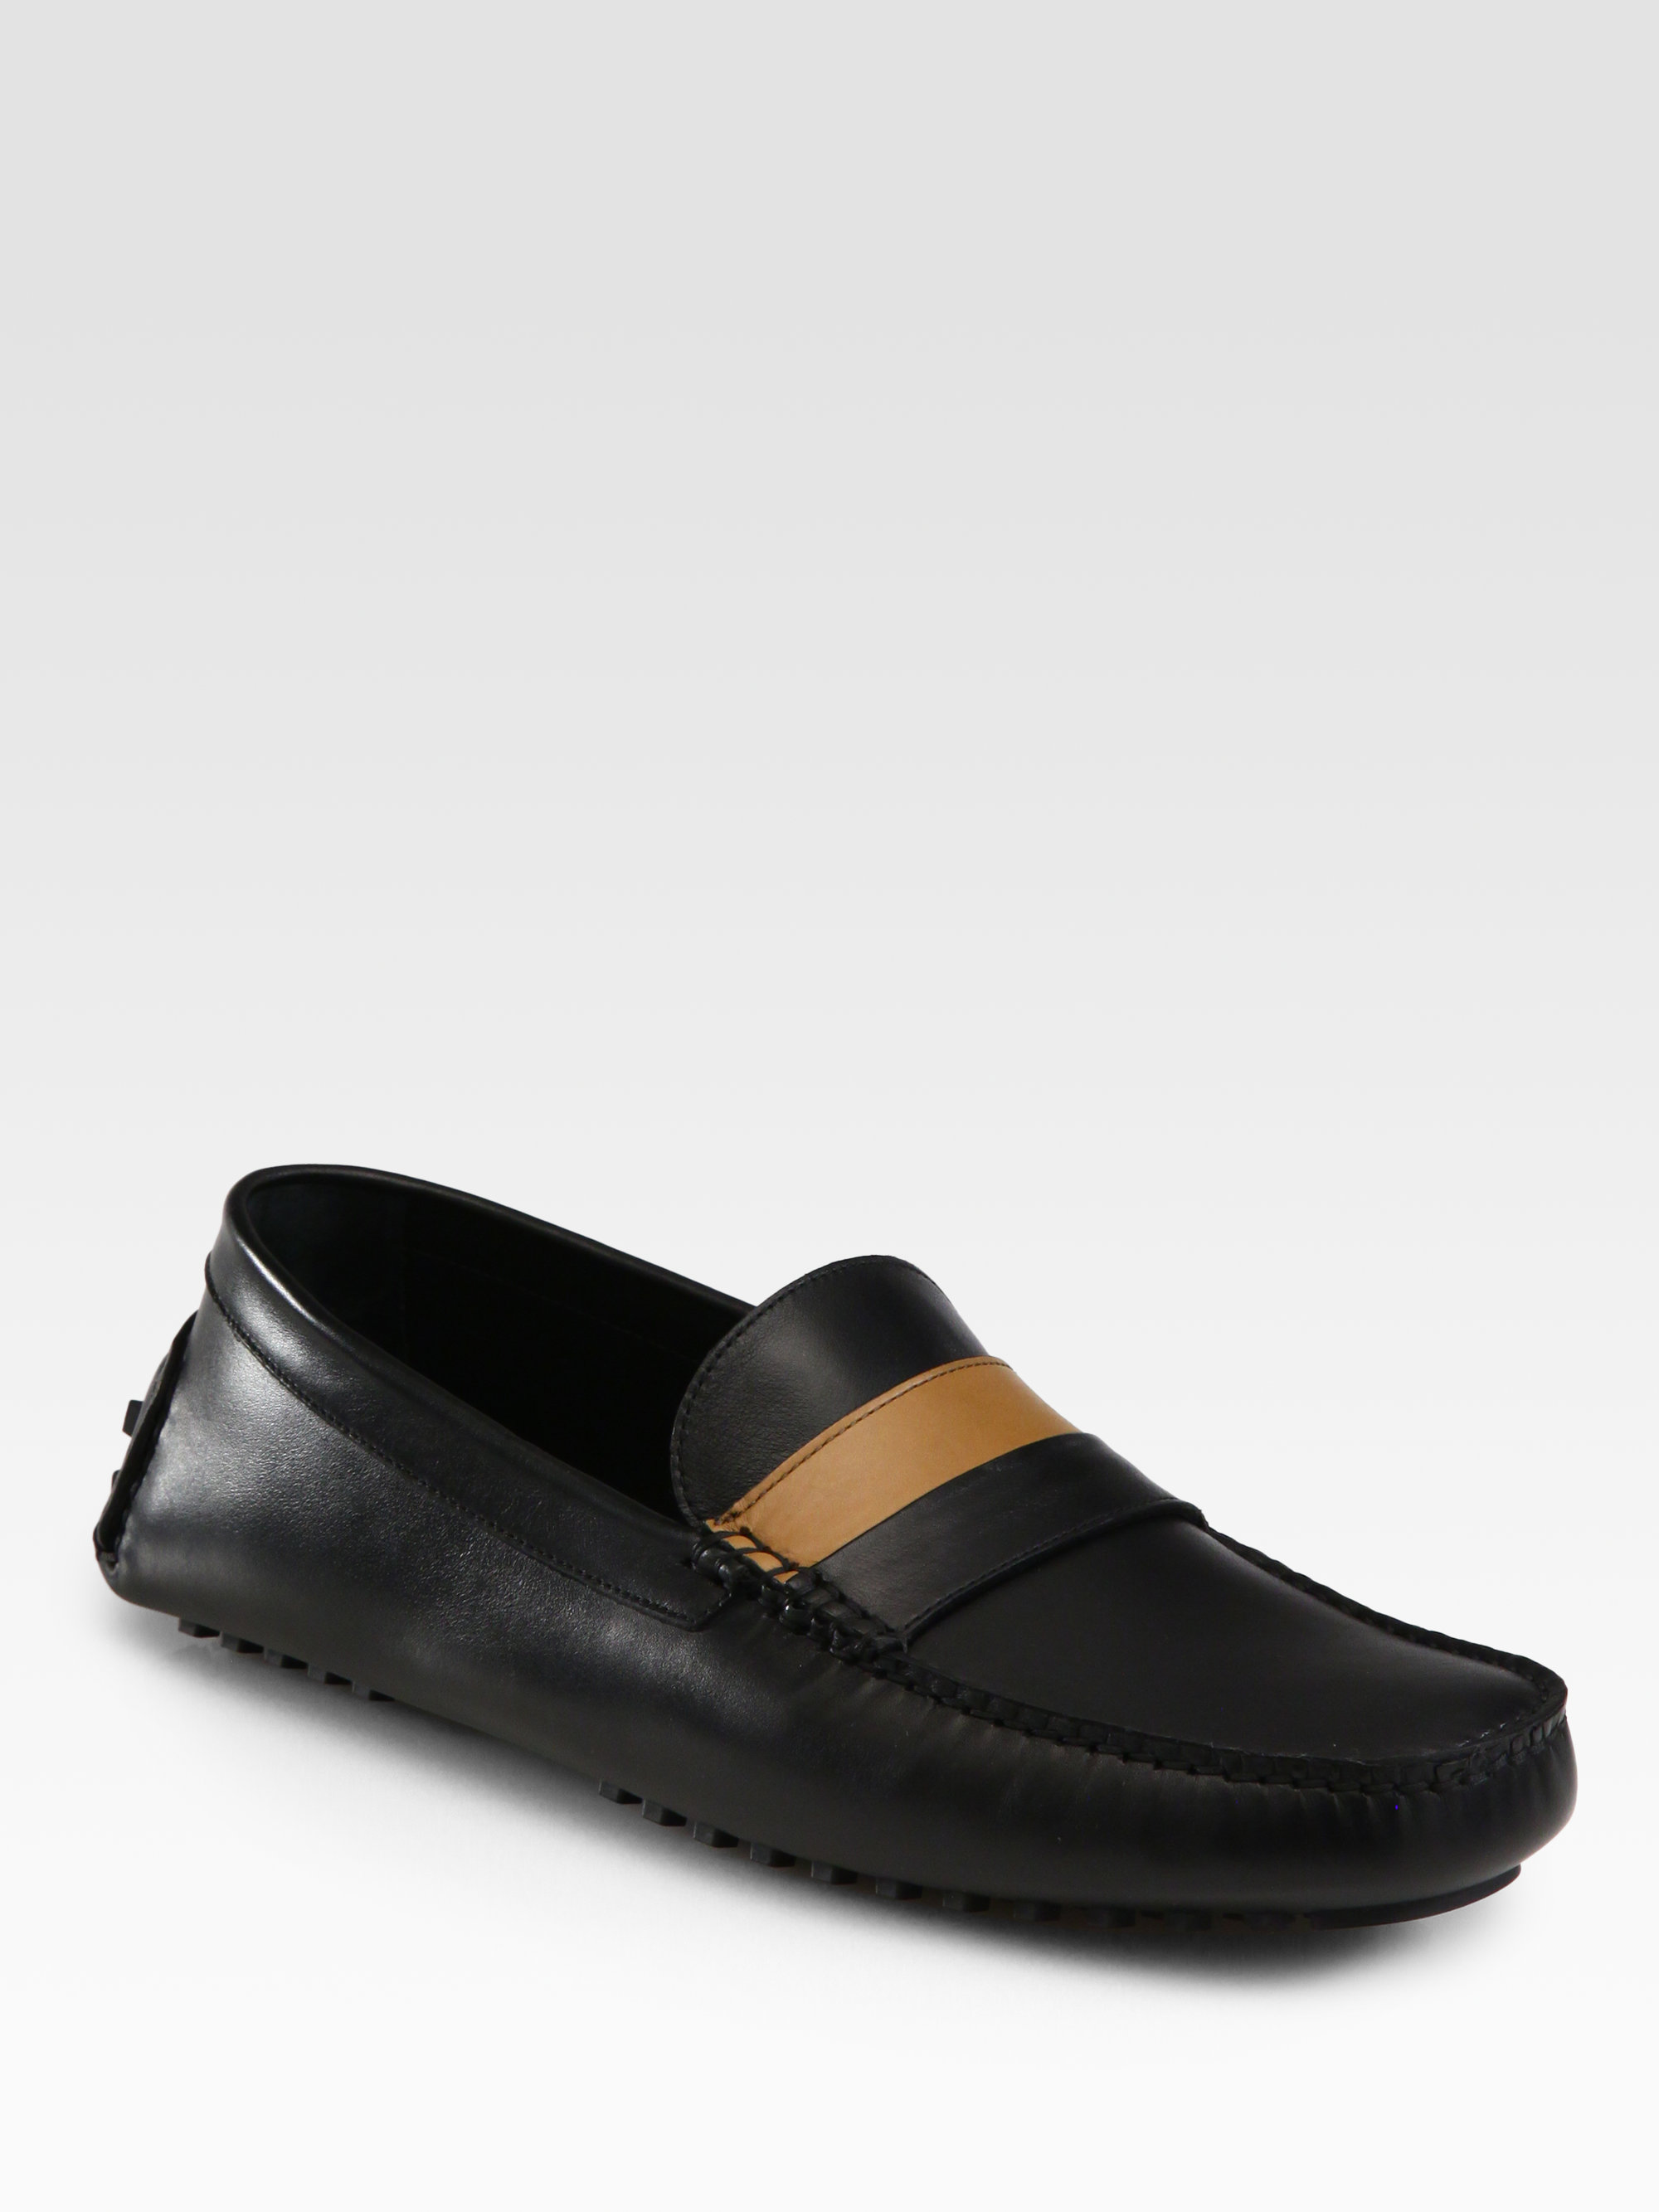 Black Leather Lace Up Moccasin Shoes